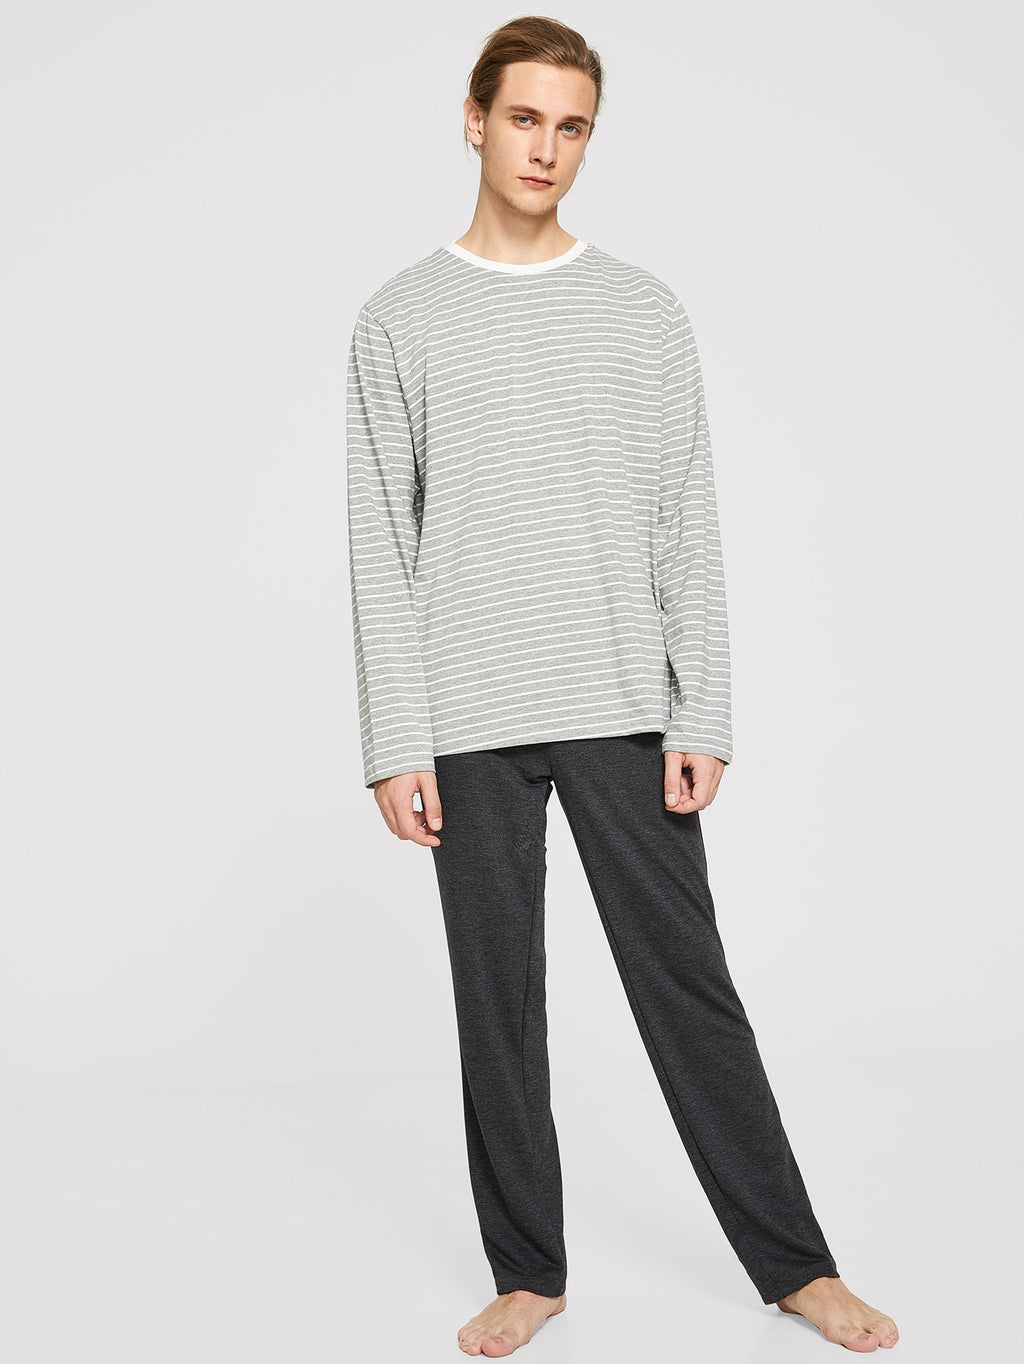 Men's Night Suit - Striped Tee and Heathered Knit Pants PJ Set